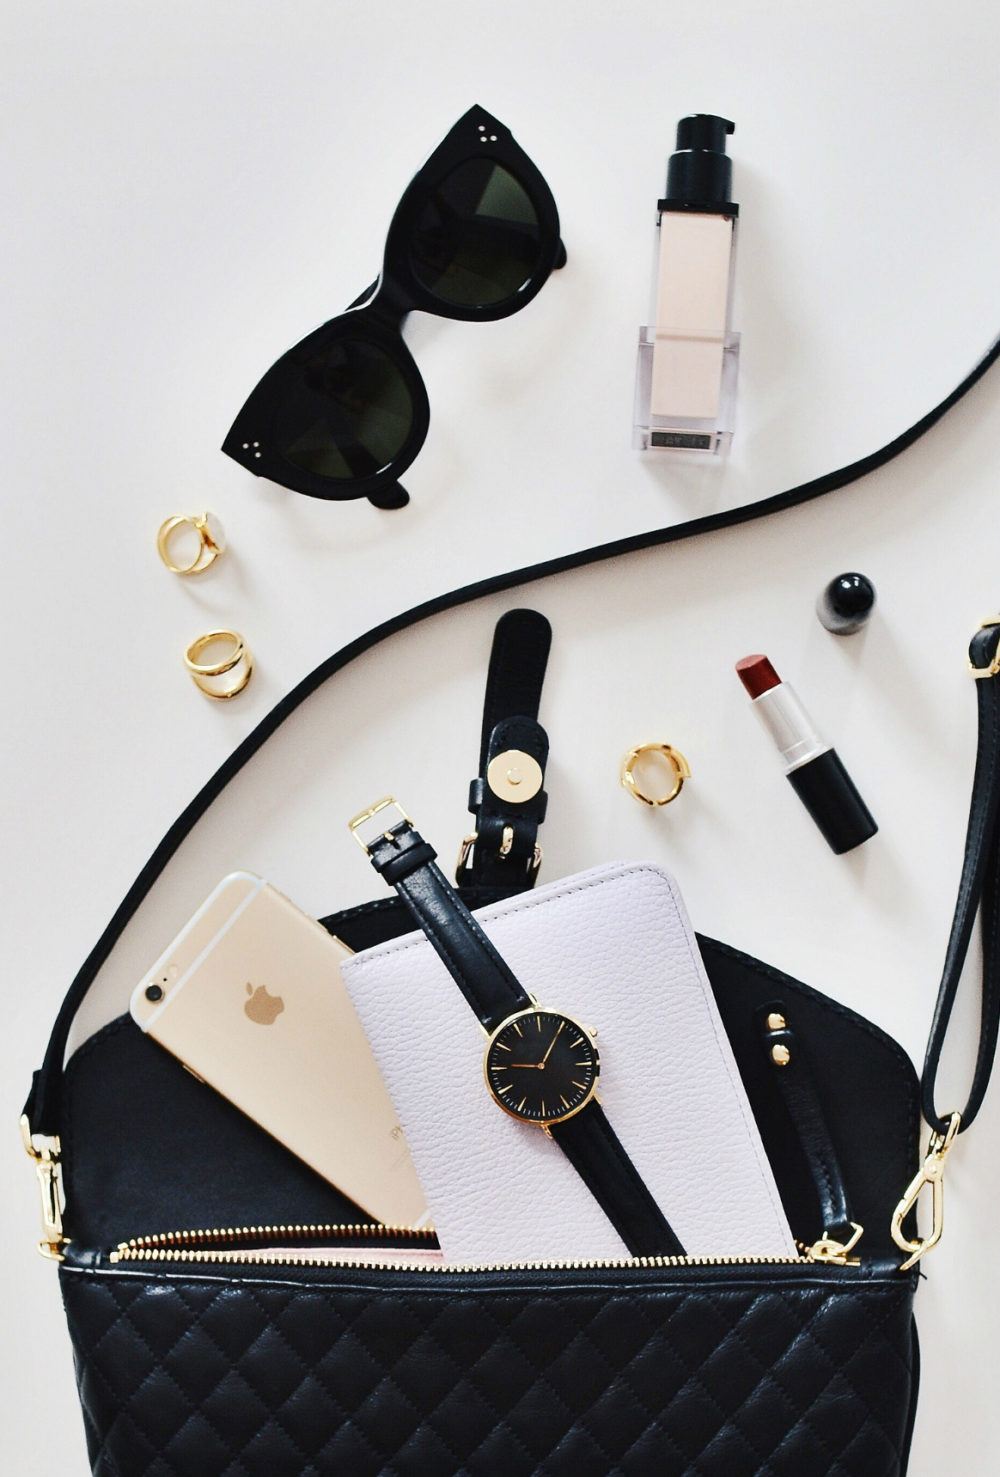 Black purse with sunglasses and cosmetics